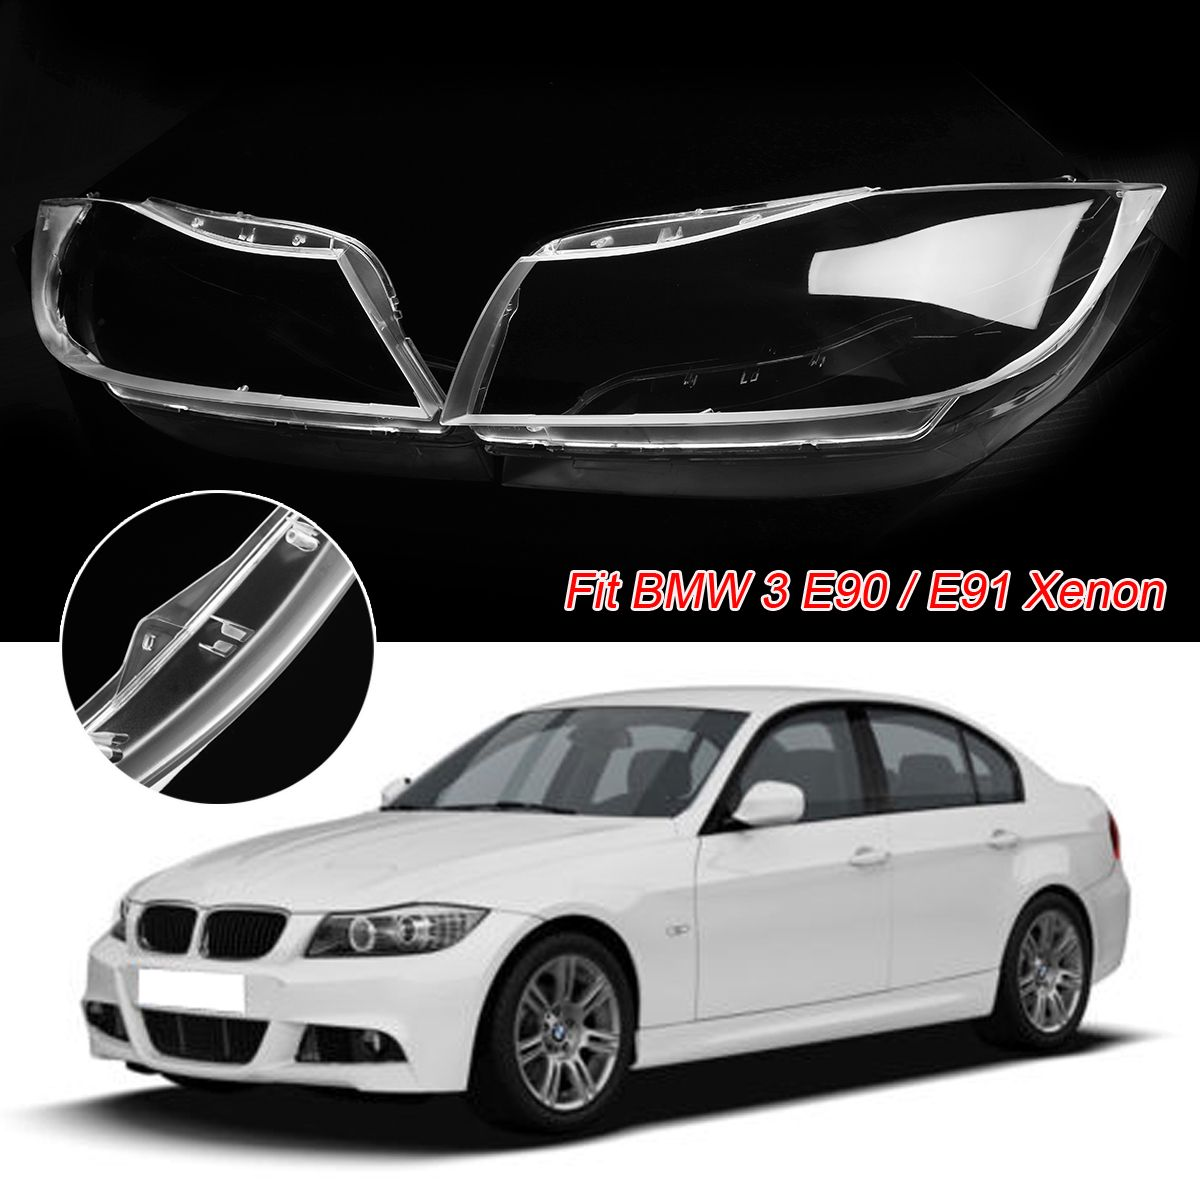 1Pair Polycarbonate Headlight Headlamp Clear Lens Replacement Covers Case Shell for BMW 3 E90 Sedan / E91 Touring Only XENON